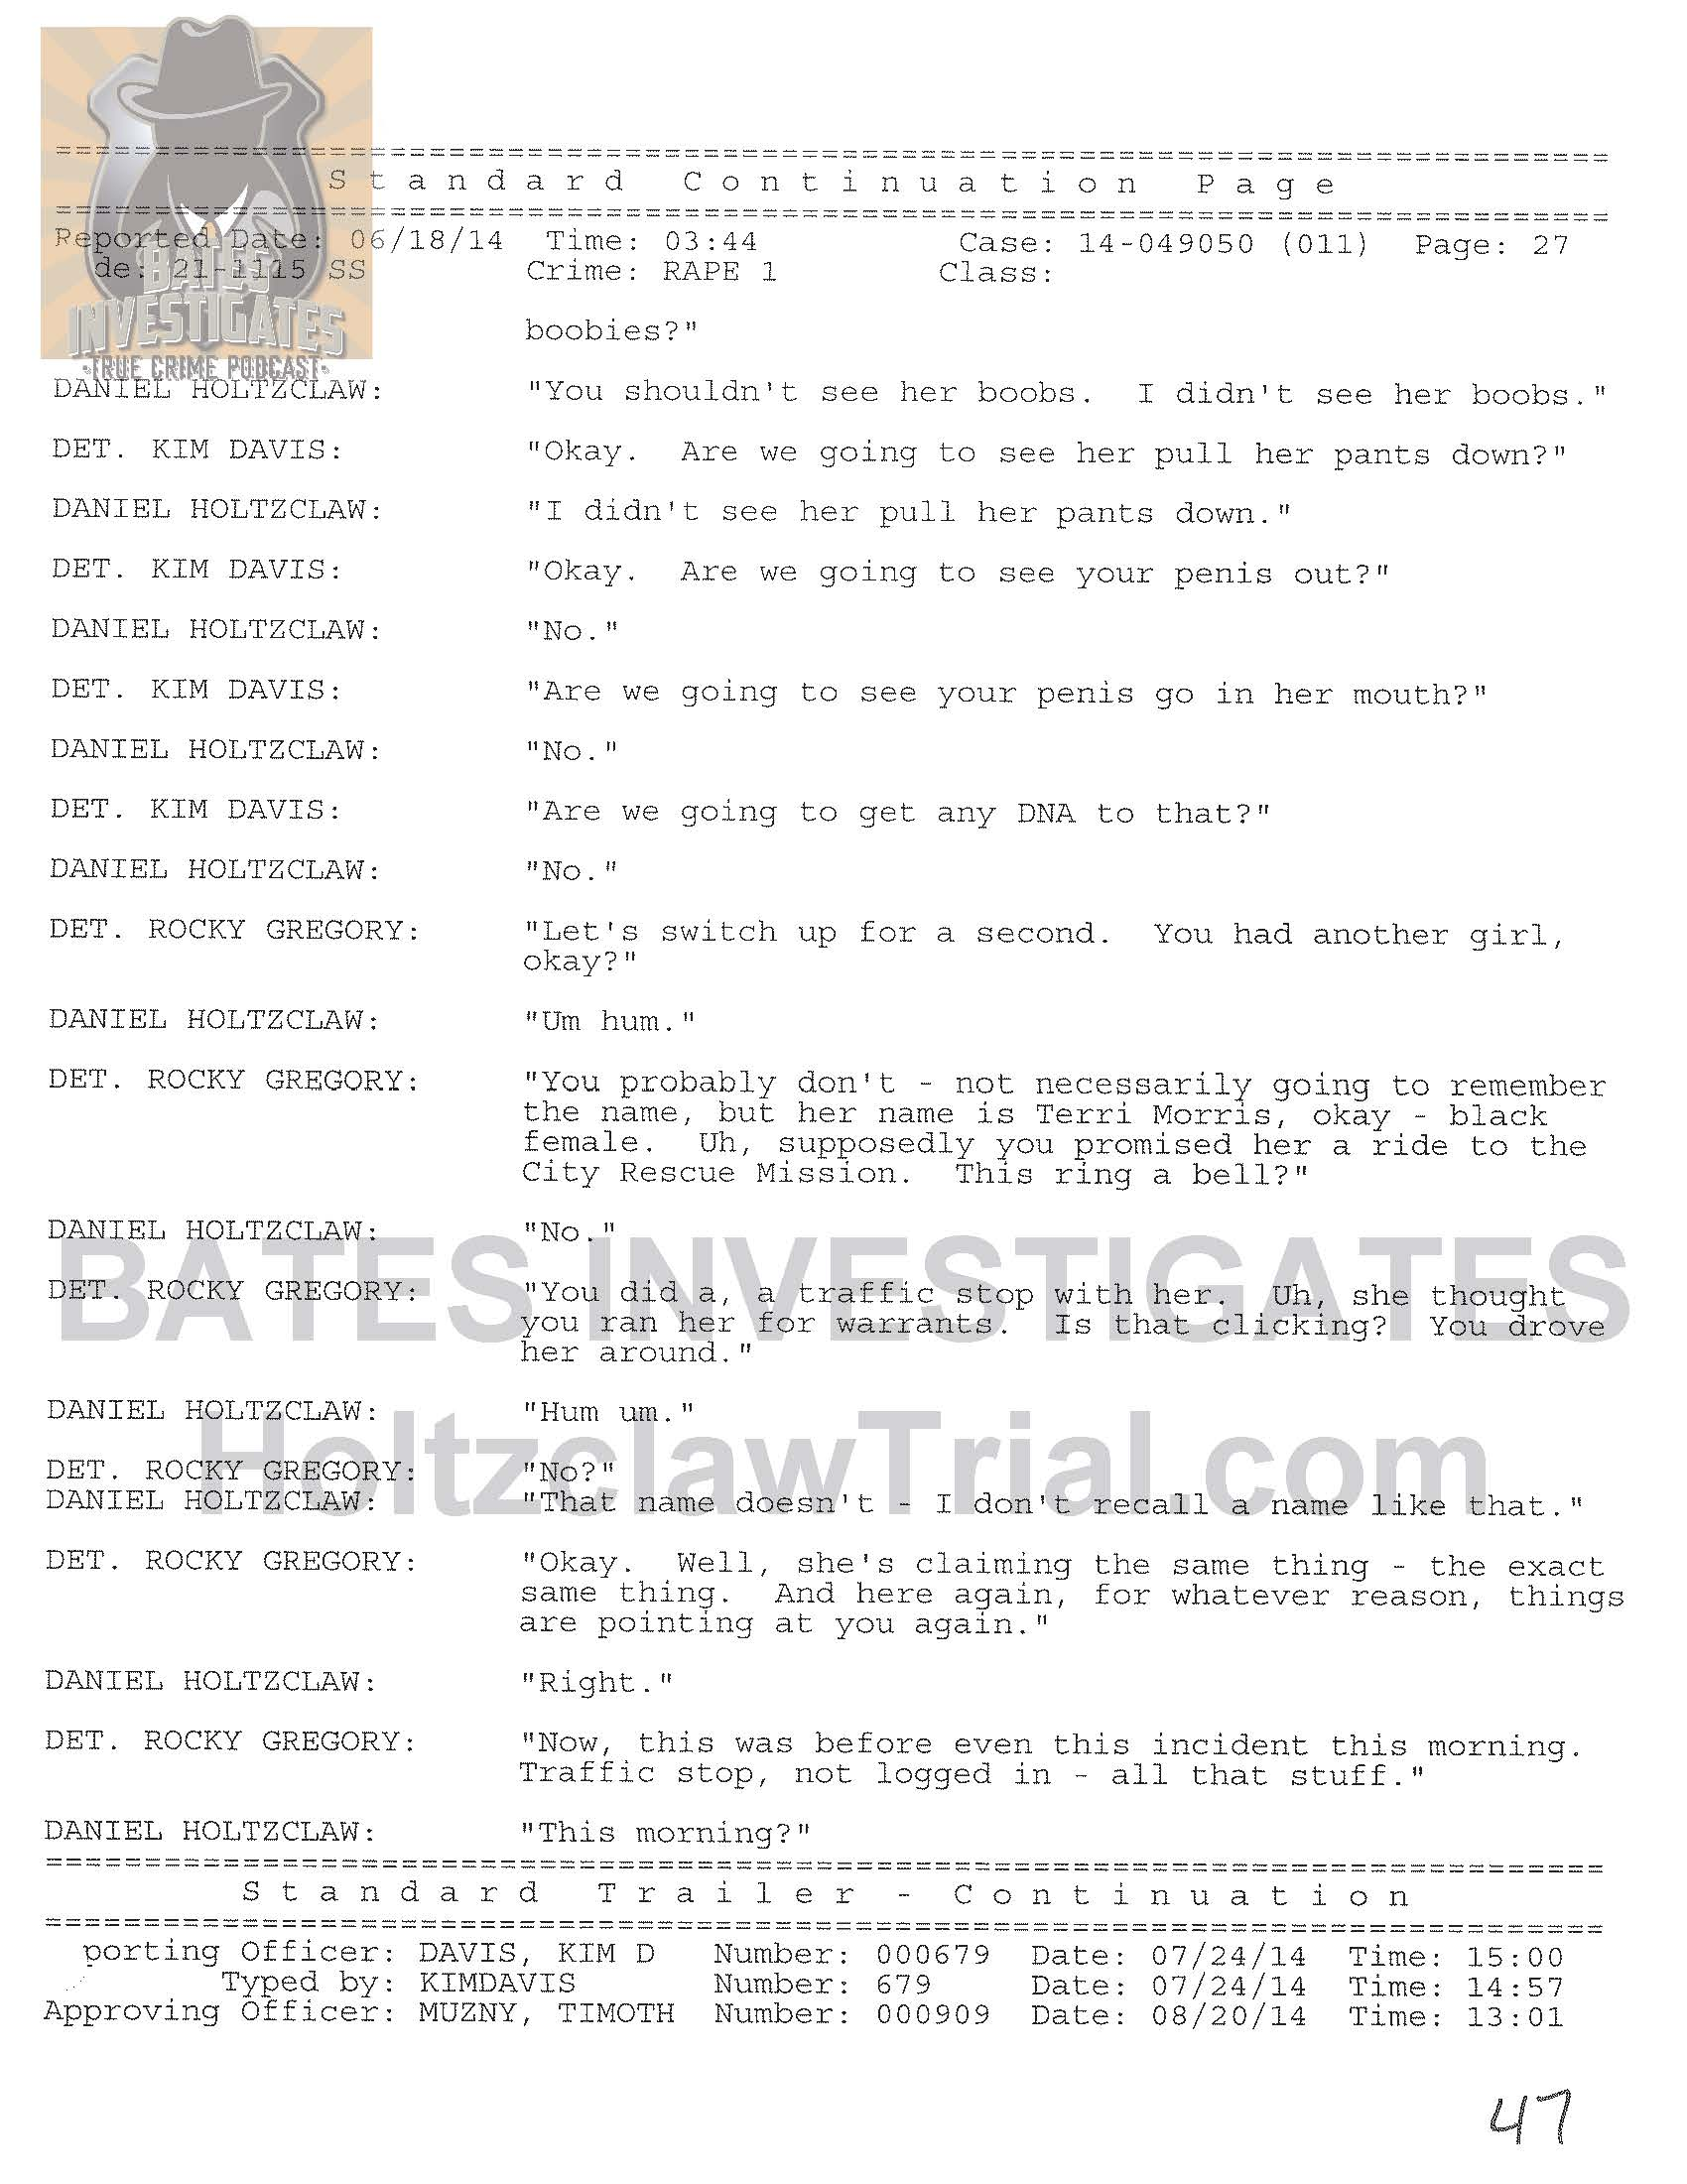 Holtzclaw Interrogation Transcript - Ep02 Redacted_Page_27.jpg